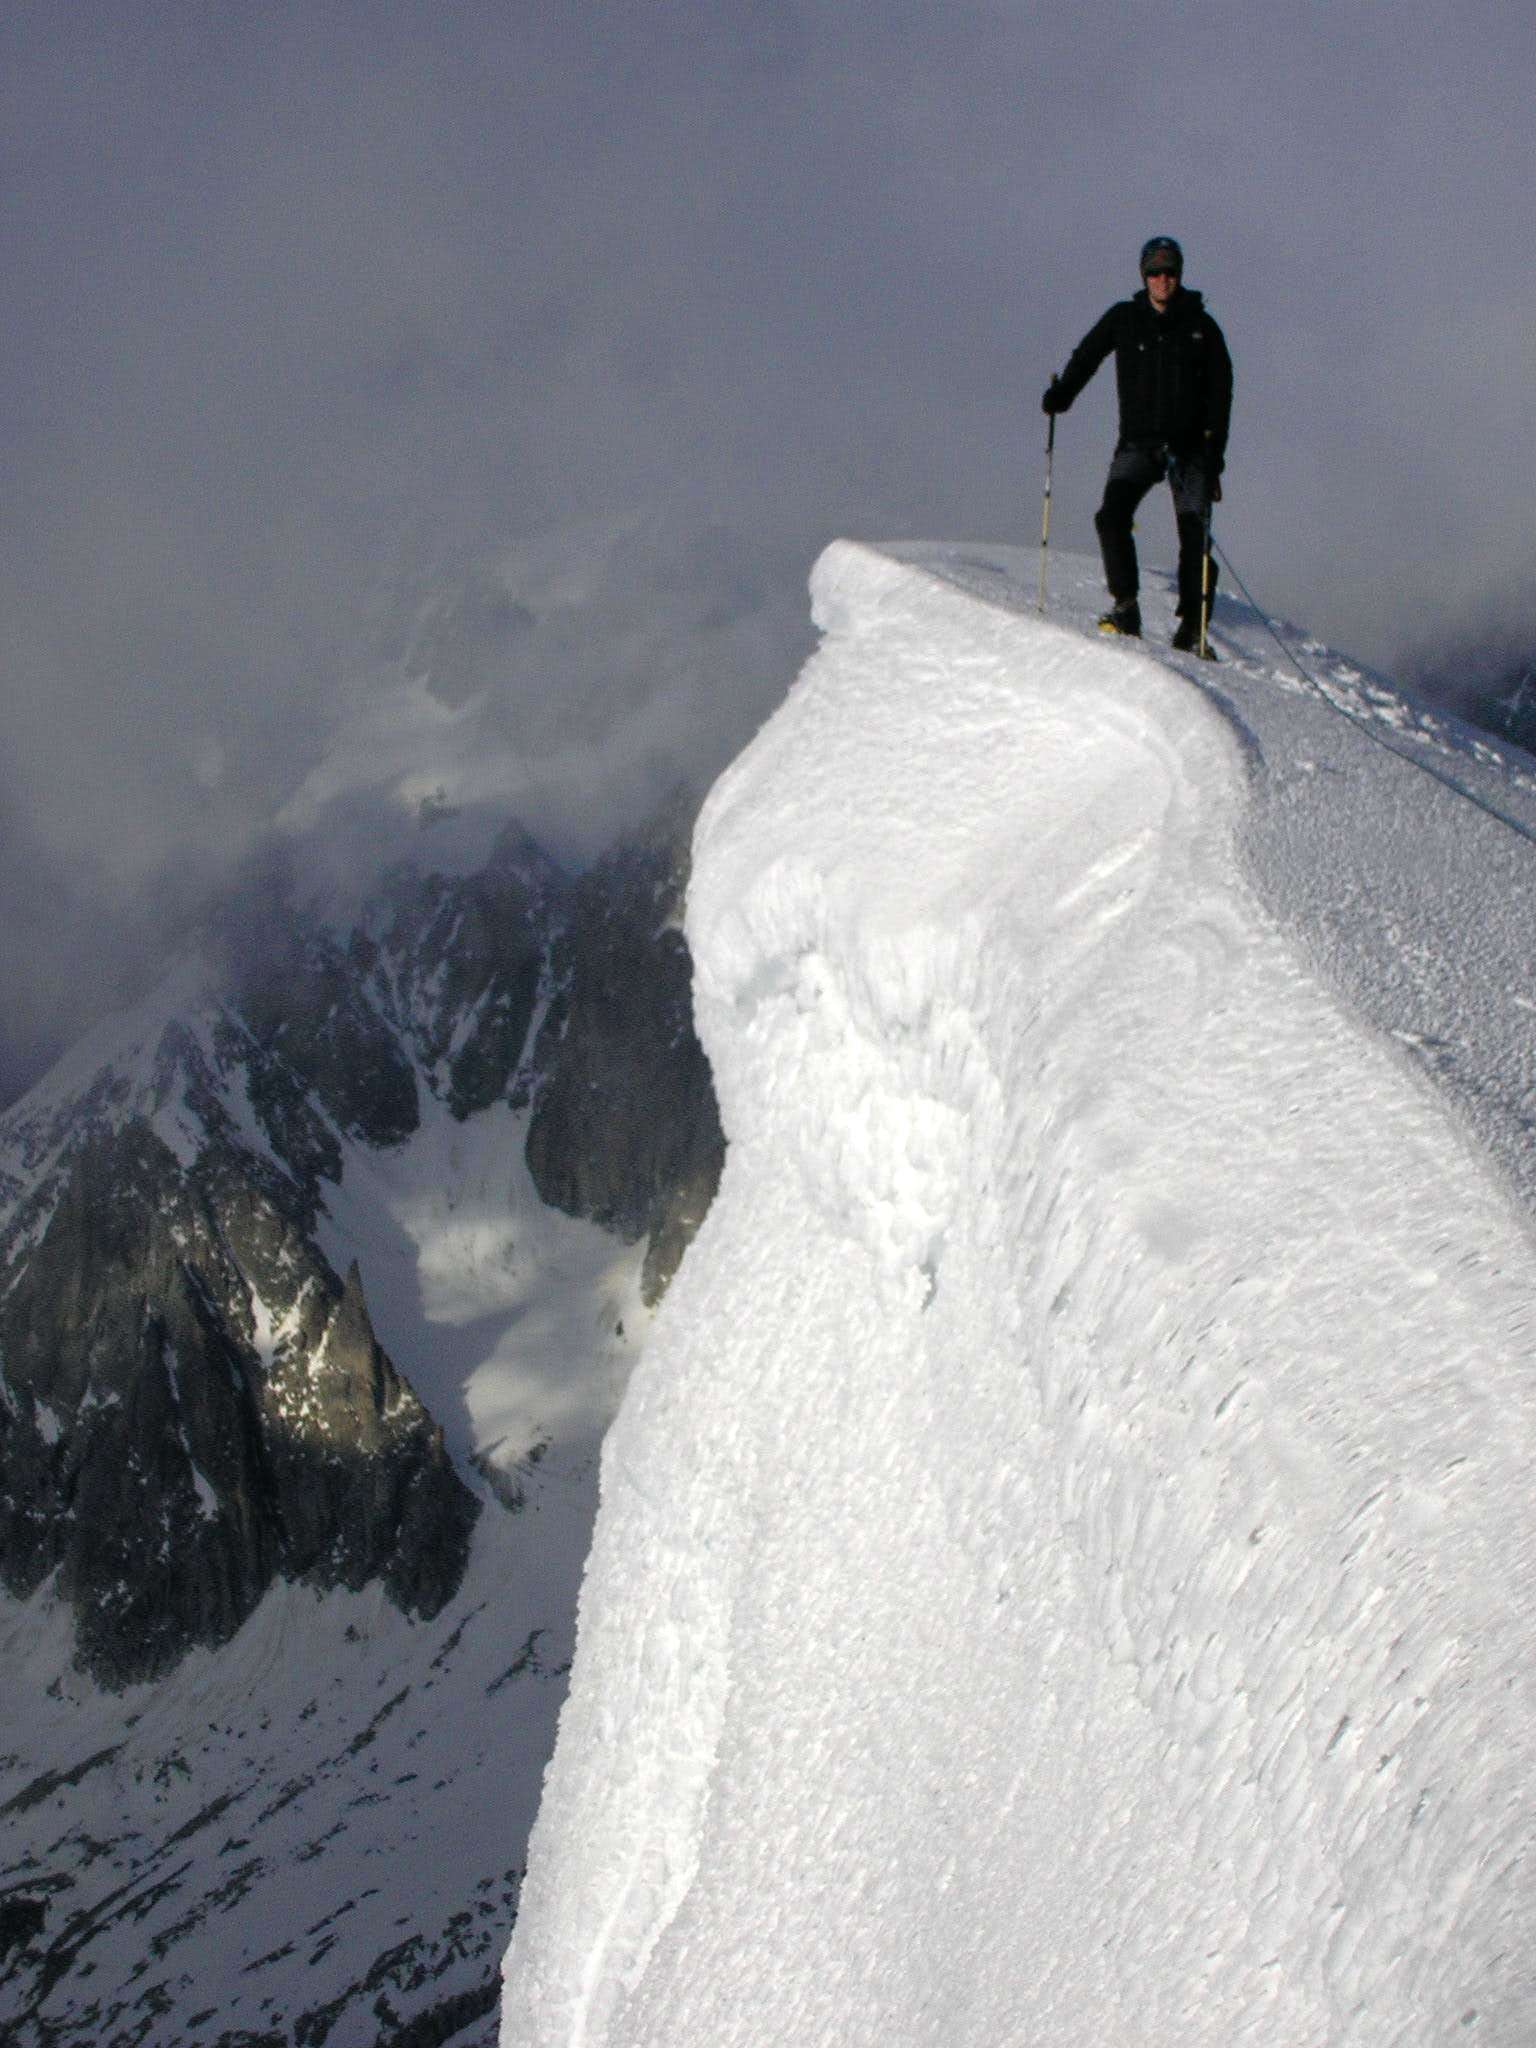 Mont Blanc du Tacul summit posing pictures